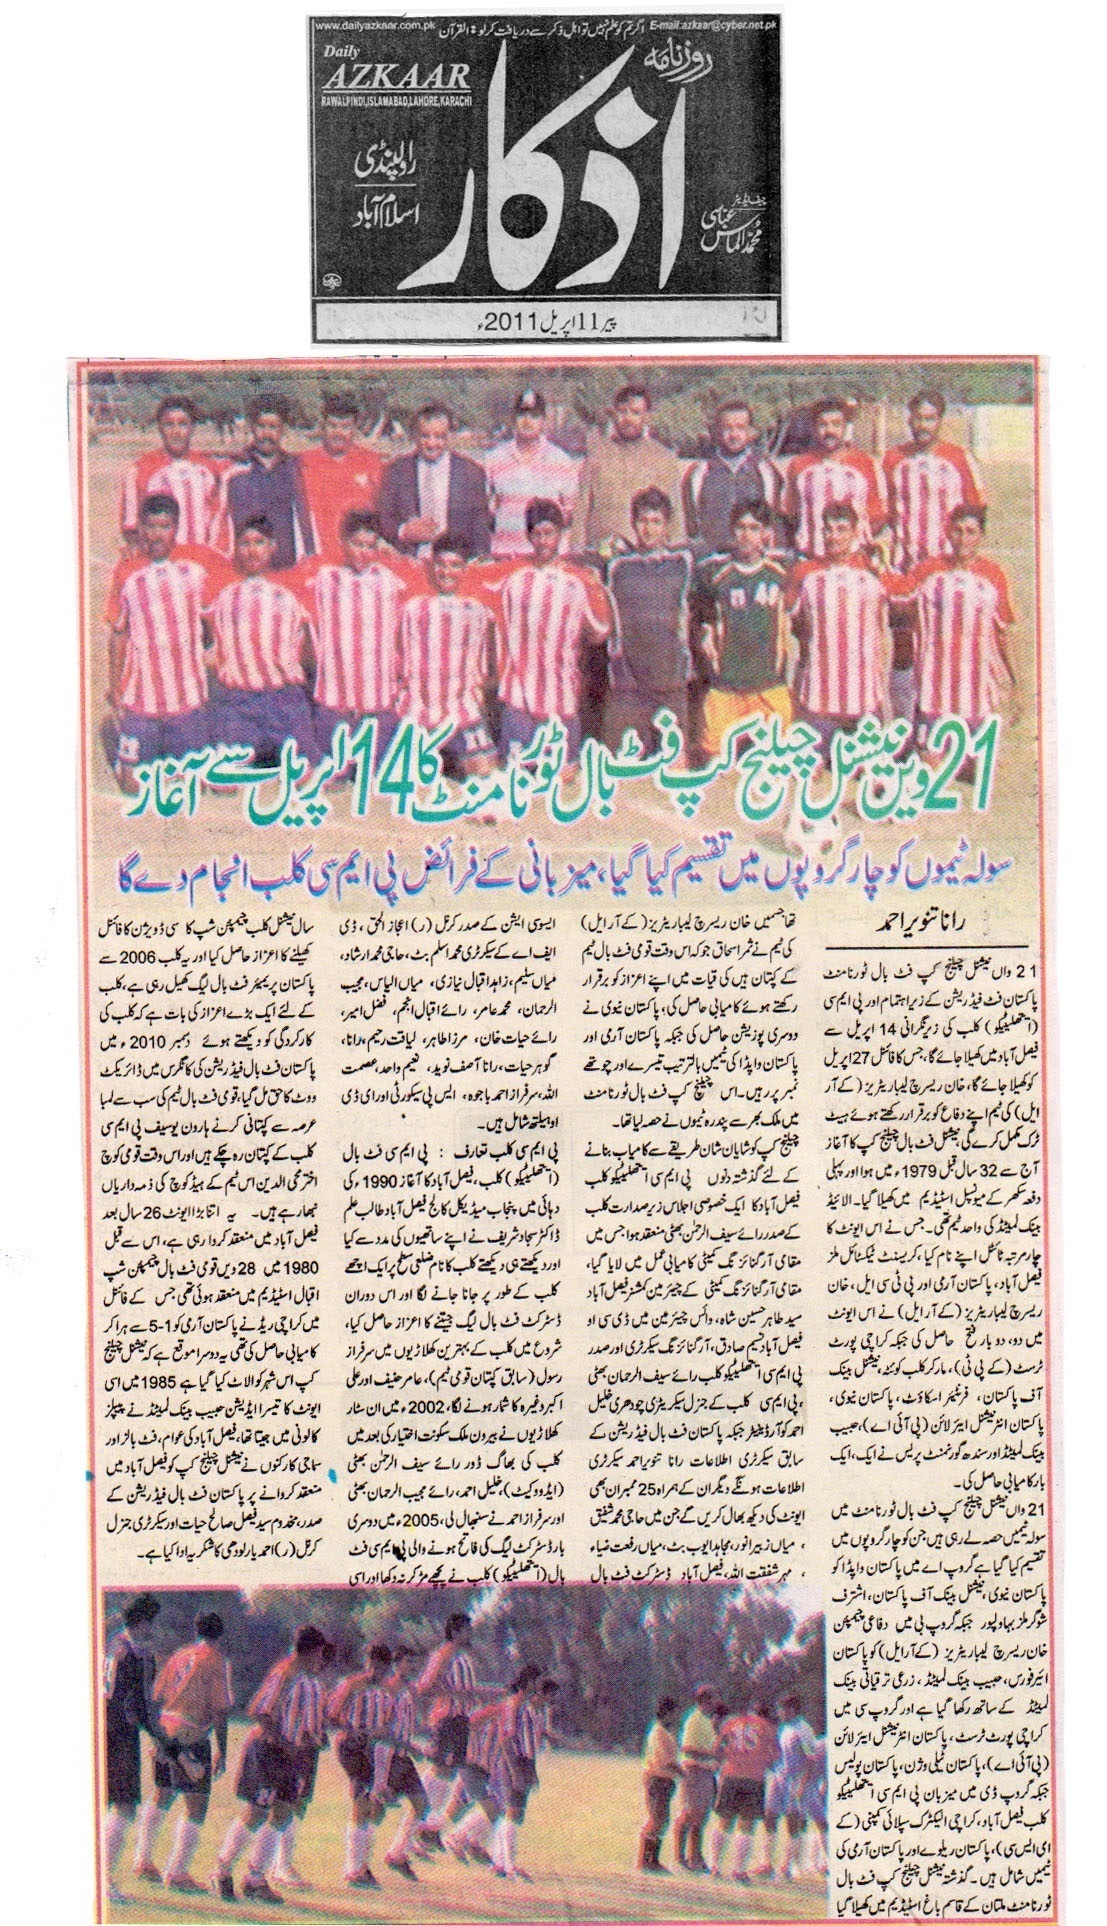 Rana Tanveer Ahmed article on Daily Azkaar